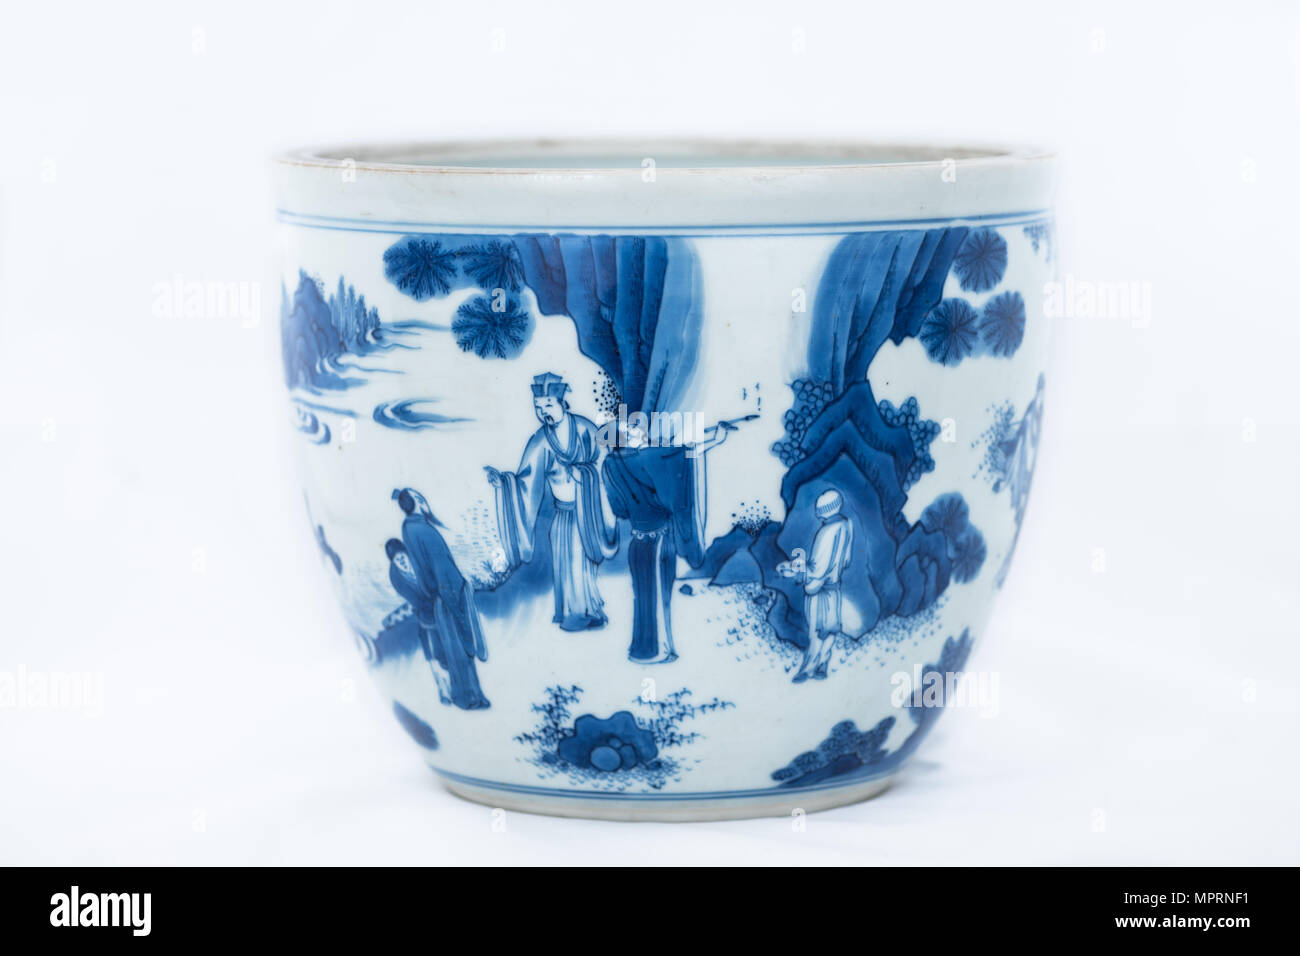 Deep blue and white fish bowl of sages in bamboo grove, 1630-1650. Artist: Unknown. - Stock Image